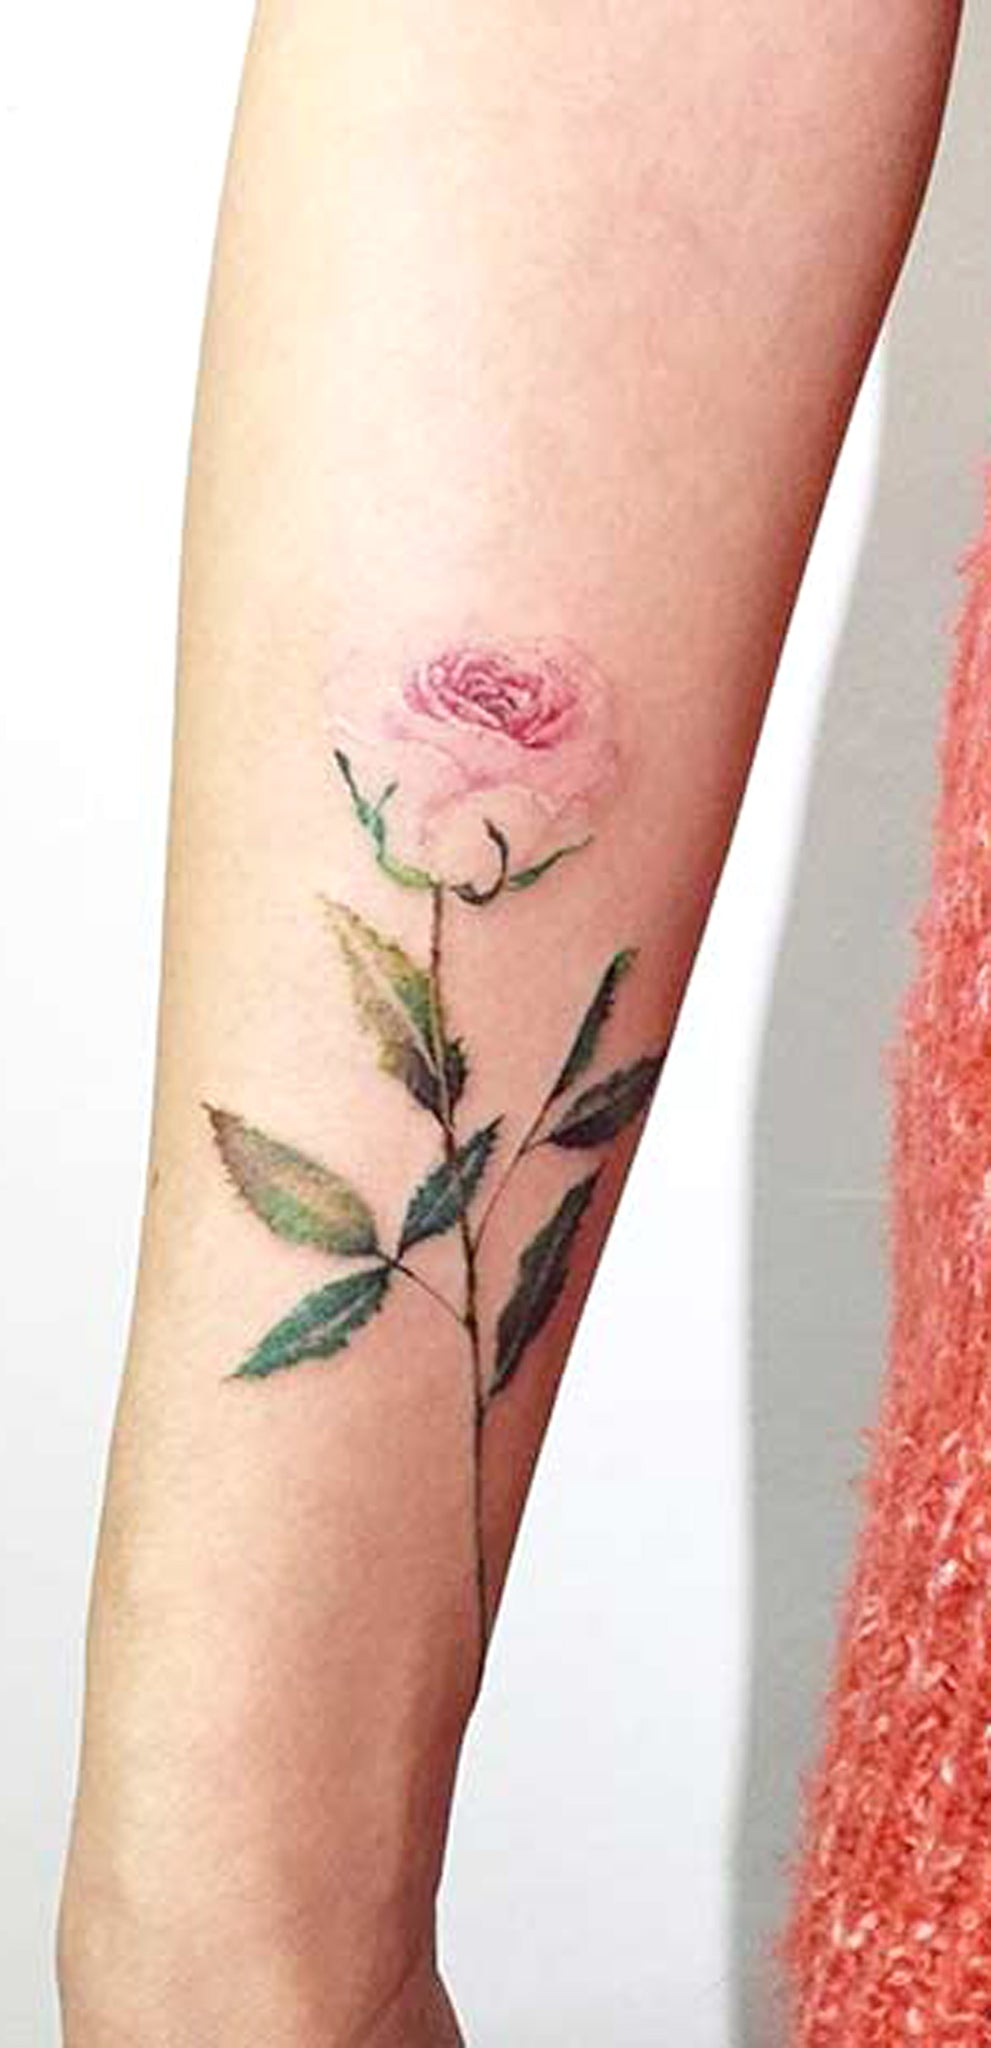 Small Delicate Single Rose Forearm Tattoo Ideas for Women - Vintage Traditional Arm Tat - www.MyBodiArt.com